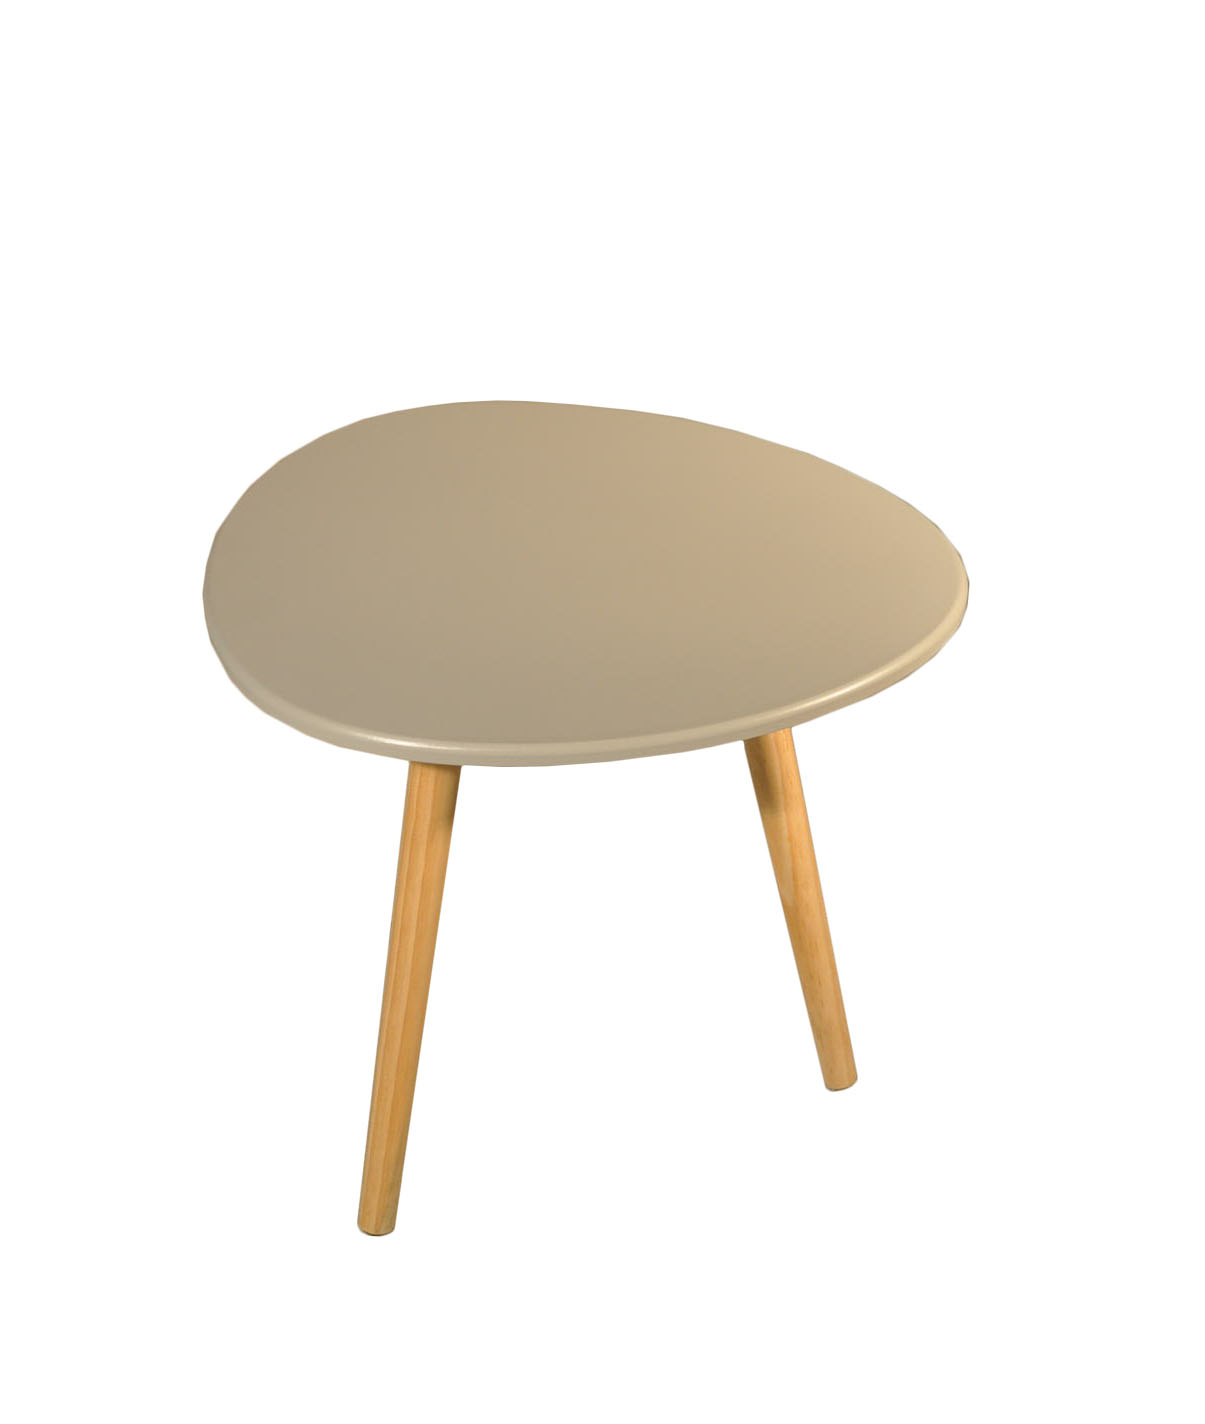 Table basse design galet maison design for Petite table basse scandinave